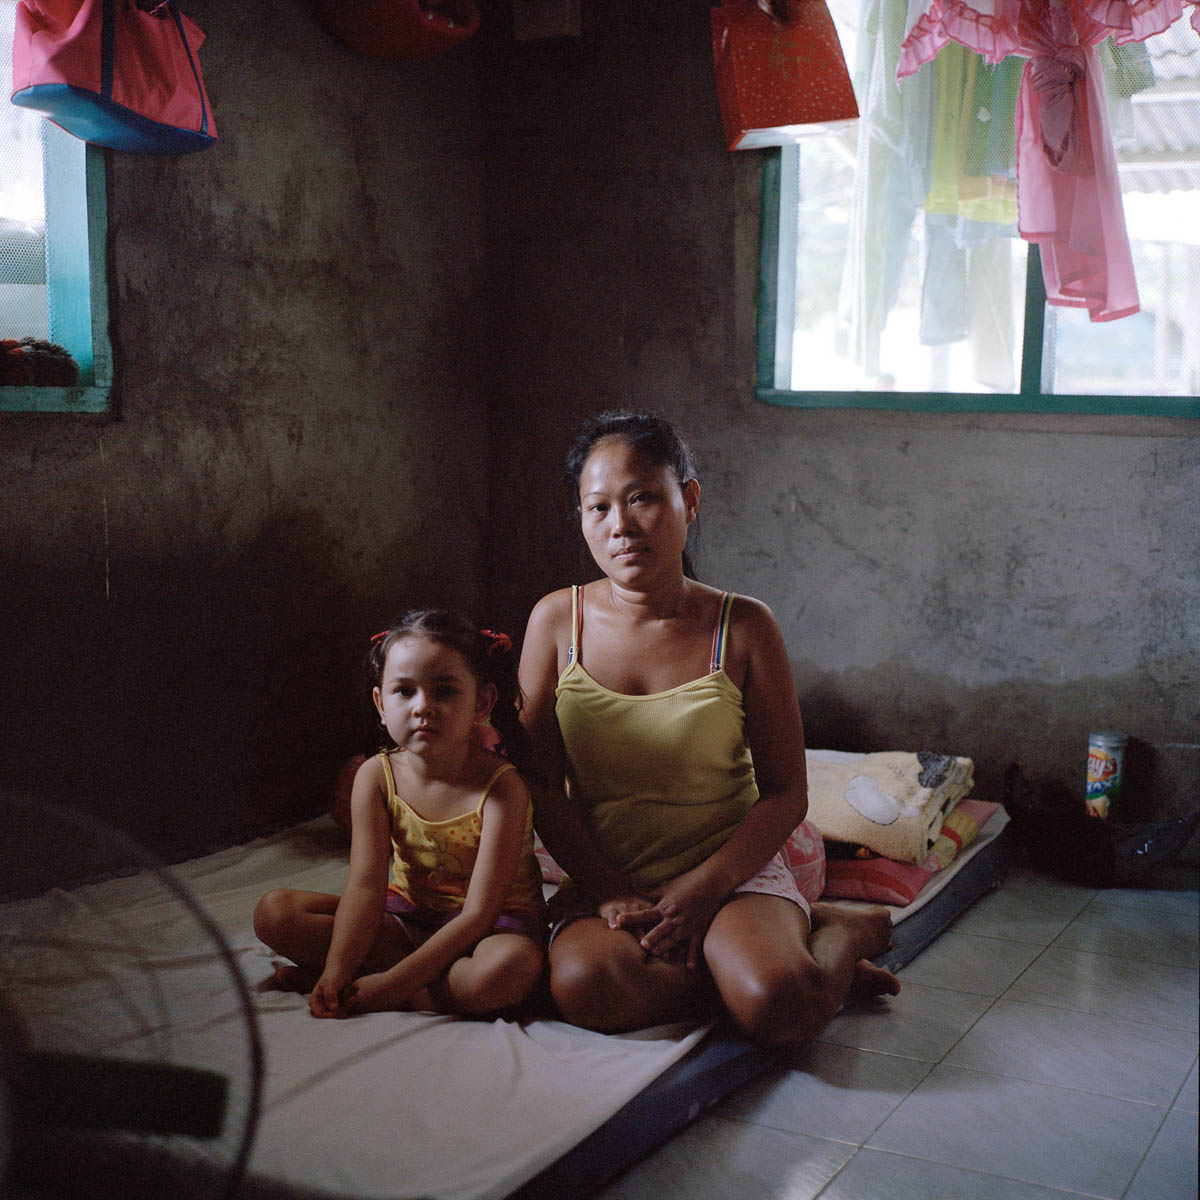 "Jocelyn and Hearty - Jocelyn, 31, and Hearty, 5 years old. Hearty's father, a 55-year-old Australian, had a three months ""relation"" with Jocelyn. Most men coming to Angeles city are looking for a ""girlfriend experience"", a long term paid relationship. Angeles City, Philippines, August 2014. - Copyright © © S. Borcard - N. Metraux - Angeles - Central Luzon - Philippines - <A href=""https://maps.google.com/?ll=15.168055,120.586388&z=16"" target=""_blank"">(Map Jocelyn and Hearty)</A>"